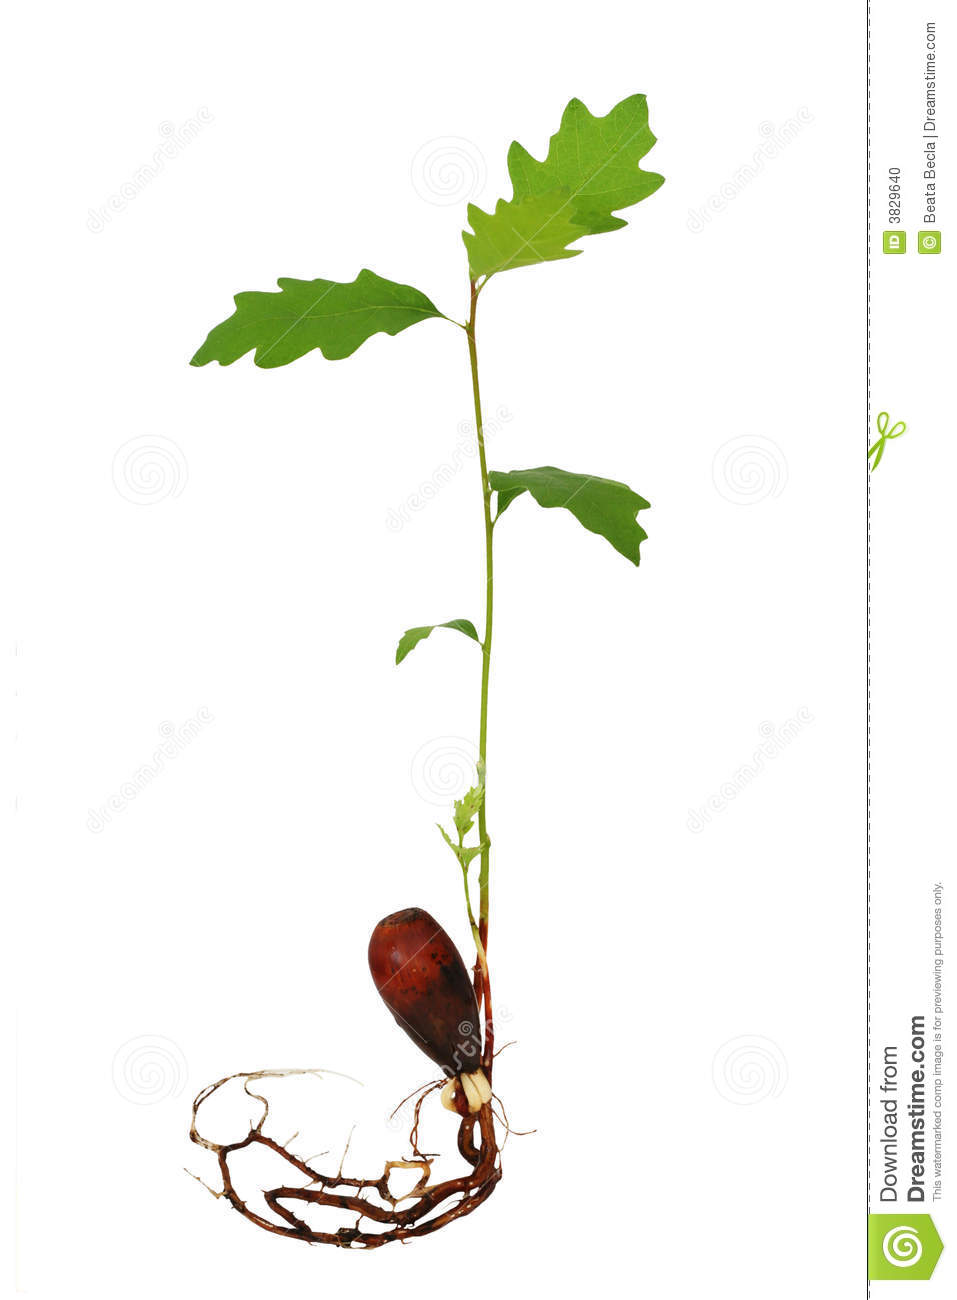 Oak tree seedling with roots stock photo image of sprout for Tree sapling